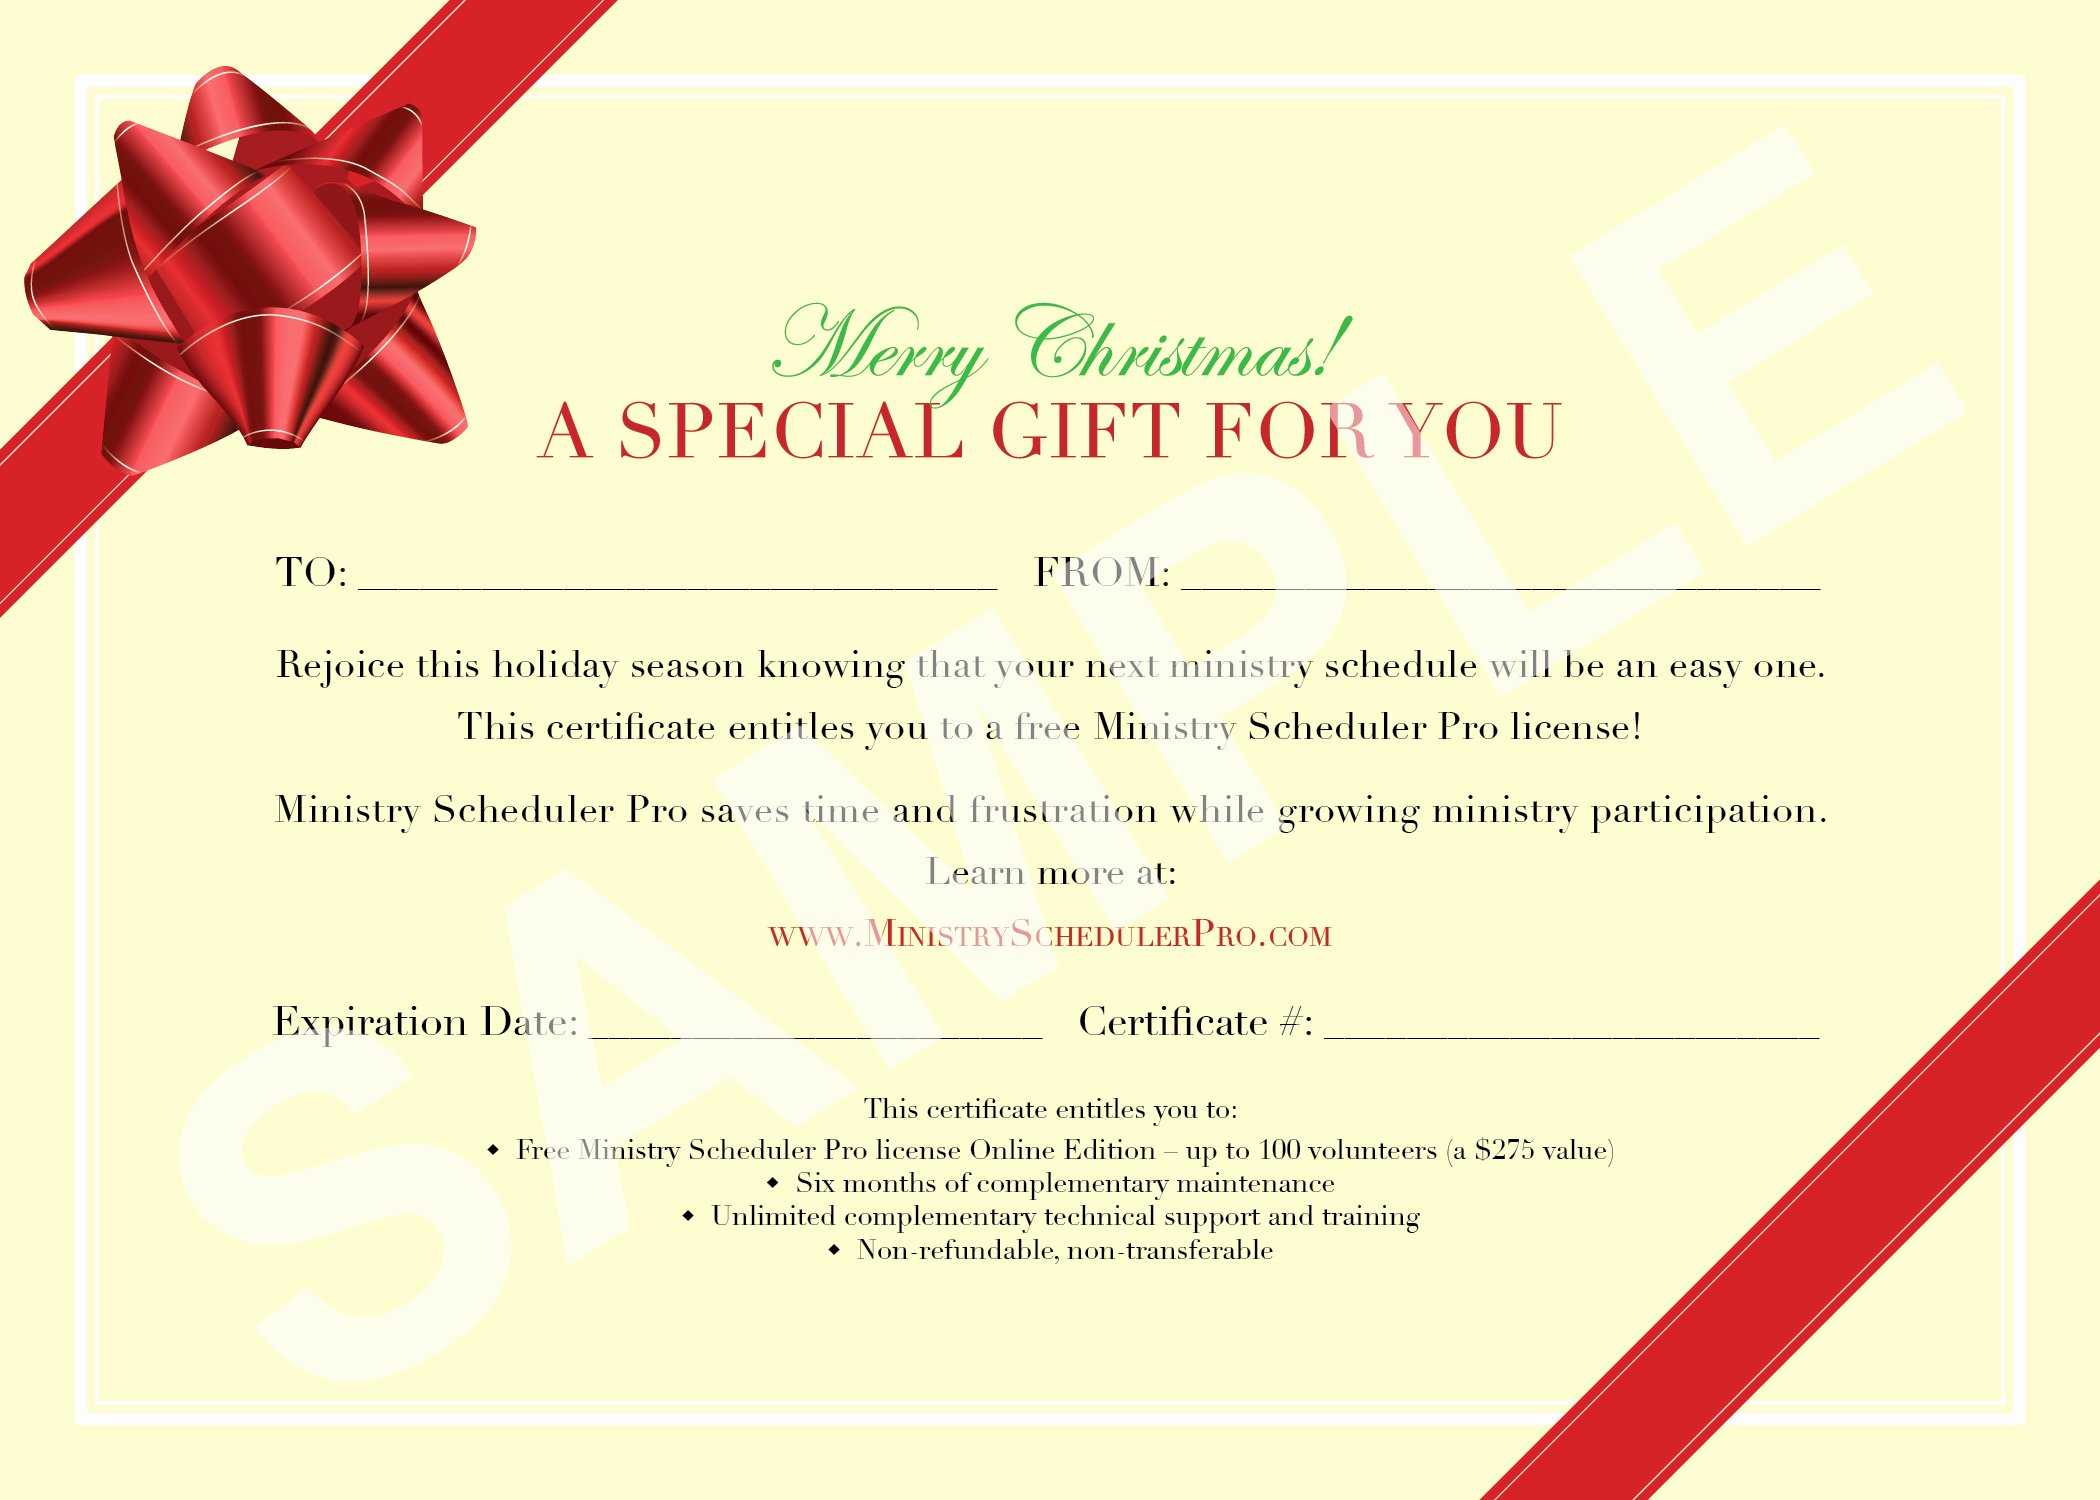 This Certificate Entitles You To Template - Calep.midnightpig.co Regarding This Certificate Entitles The Bearer Template